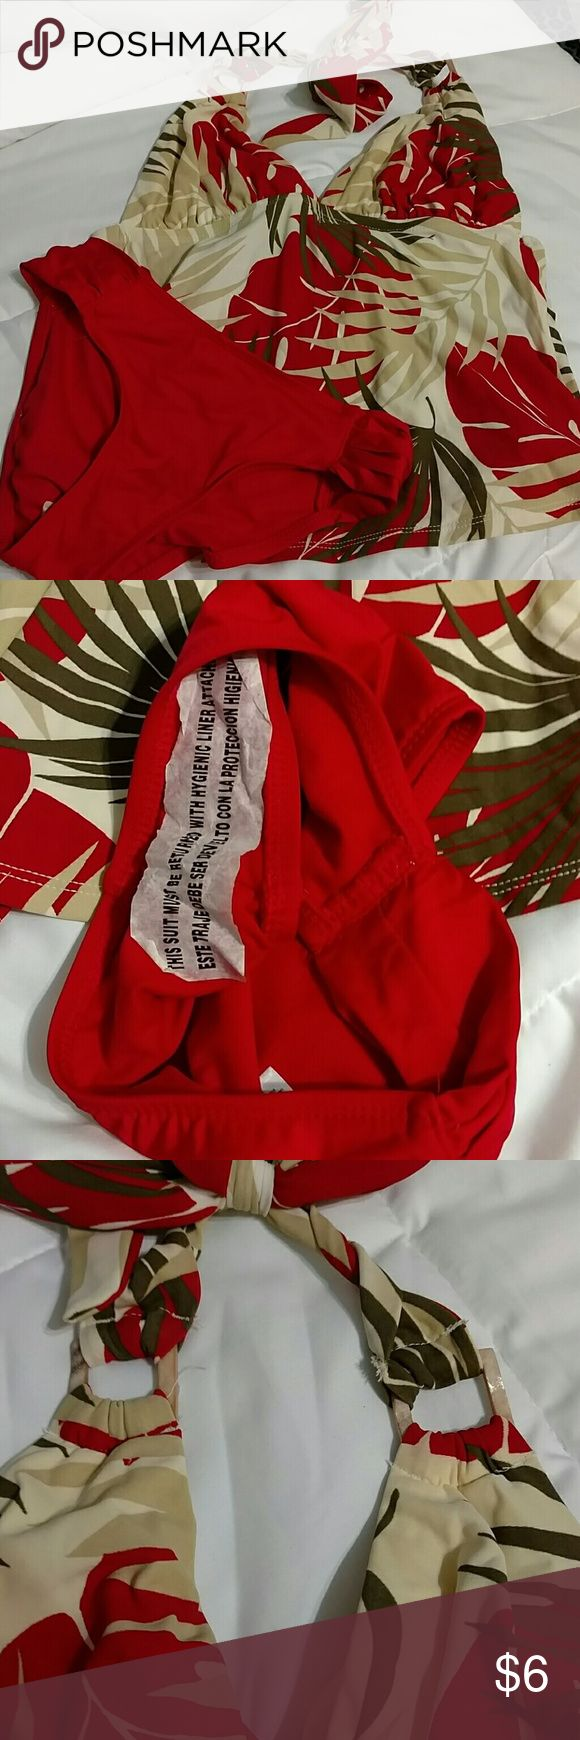 Red tropic tankini set NWOT Red,cream,tan tankini. Ties in back, back is open. NWOT. Mossimo Supply Co Swim